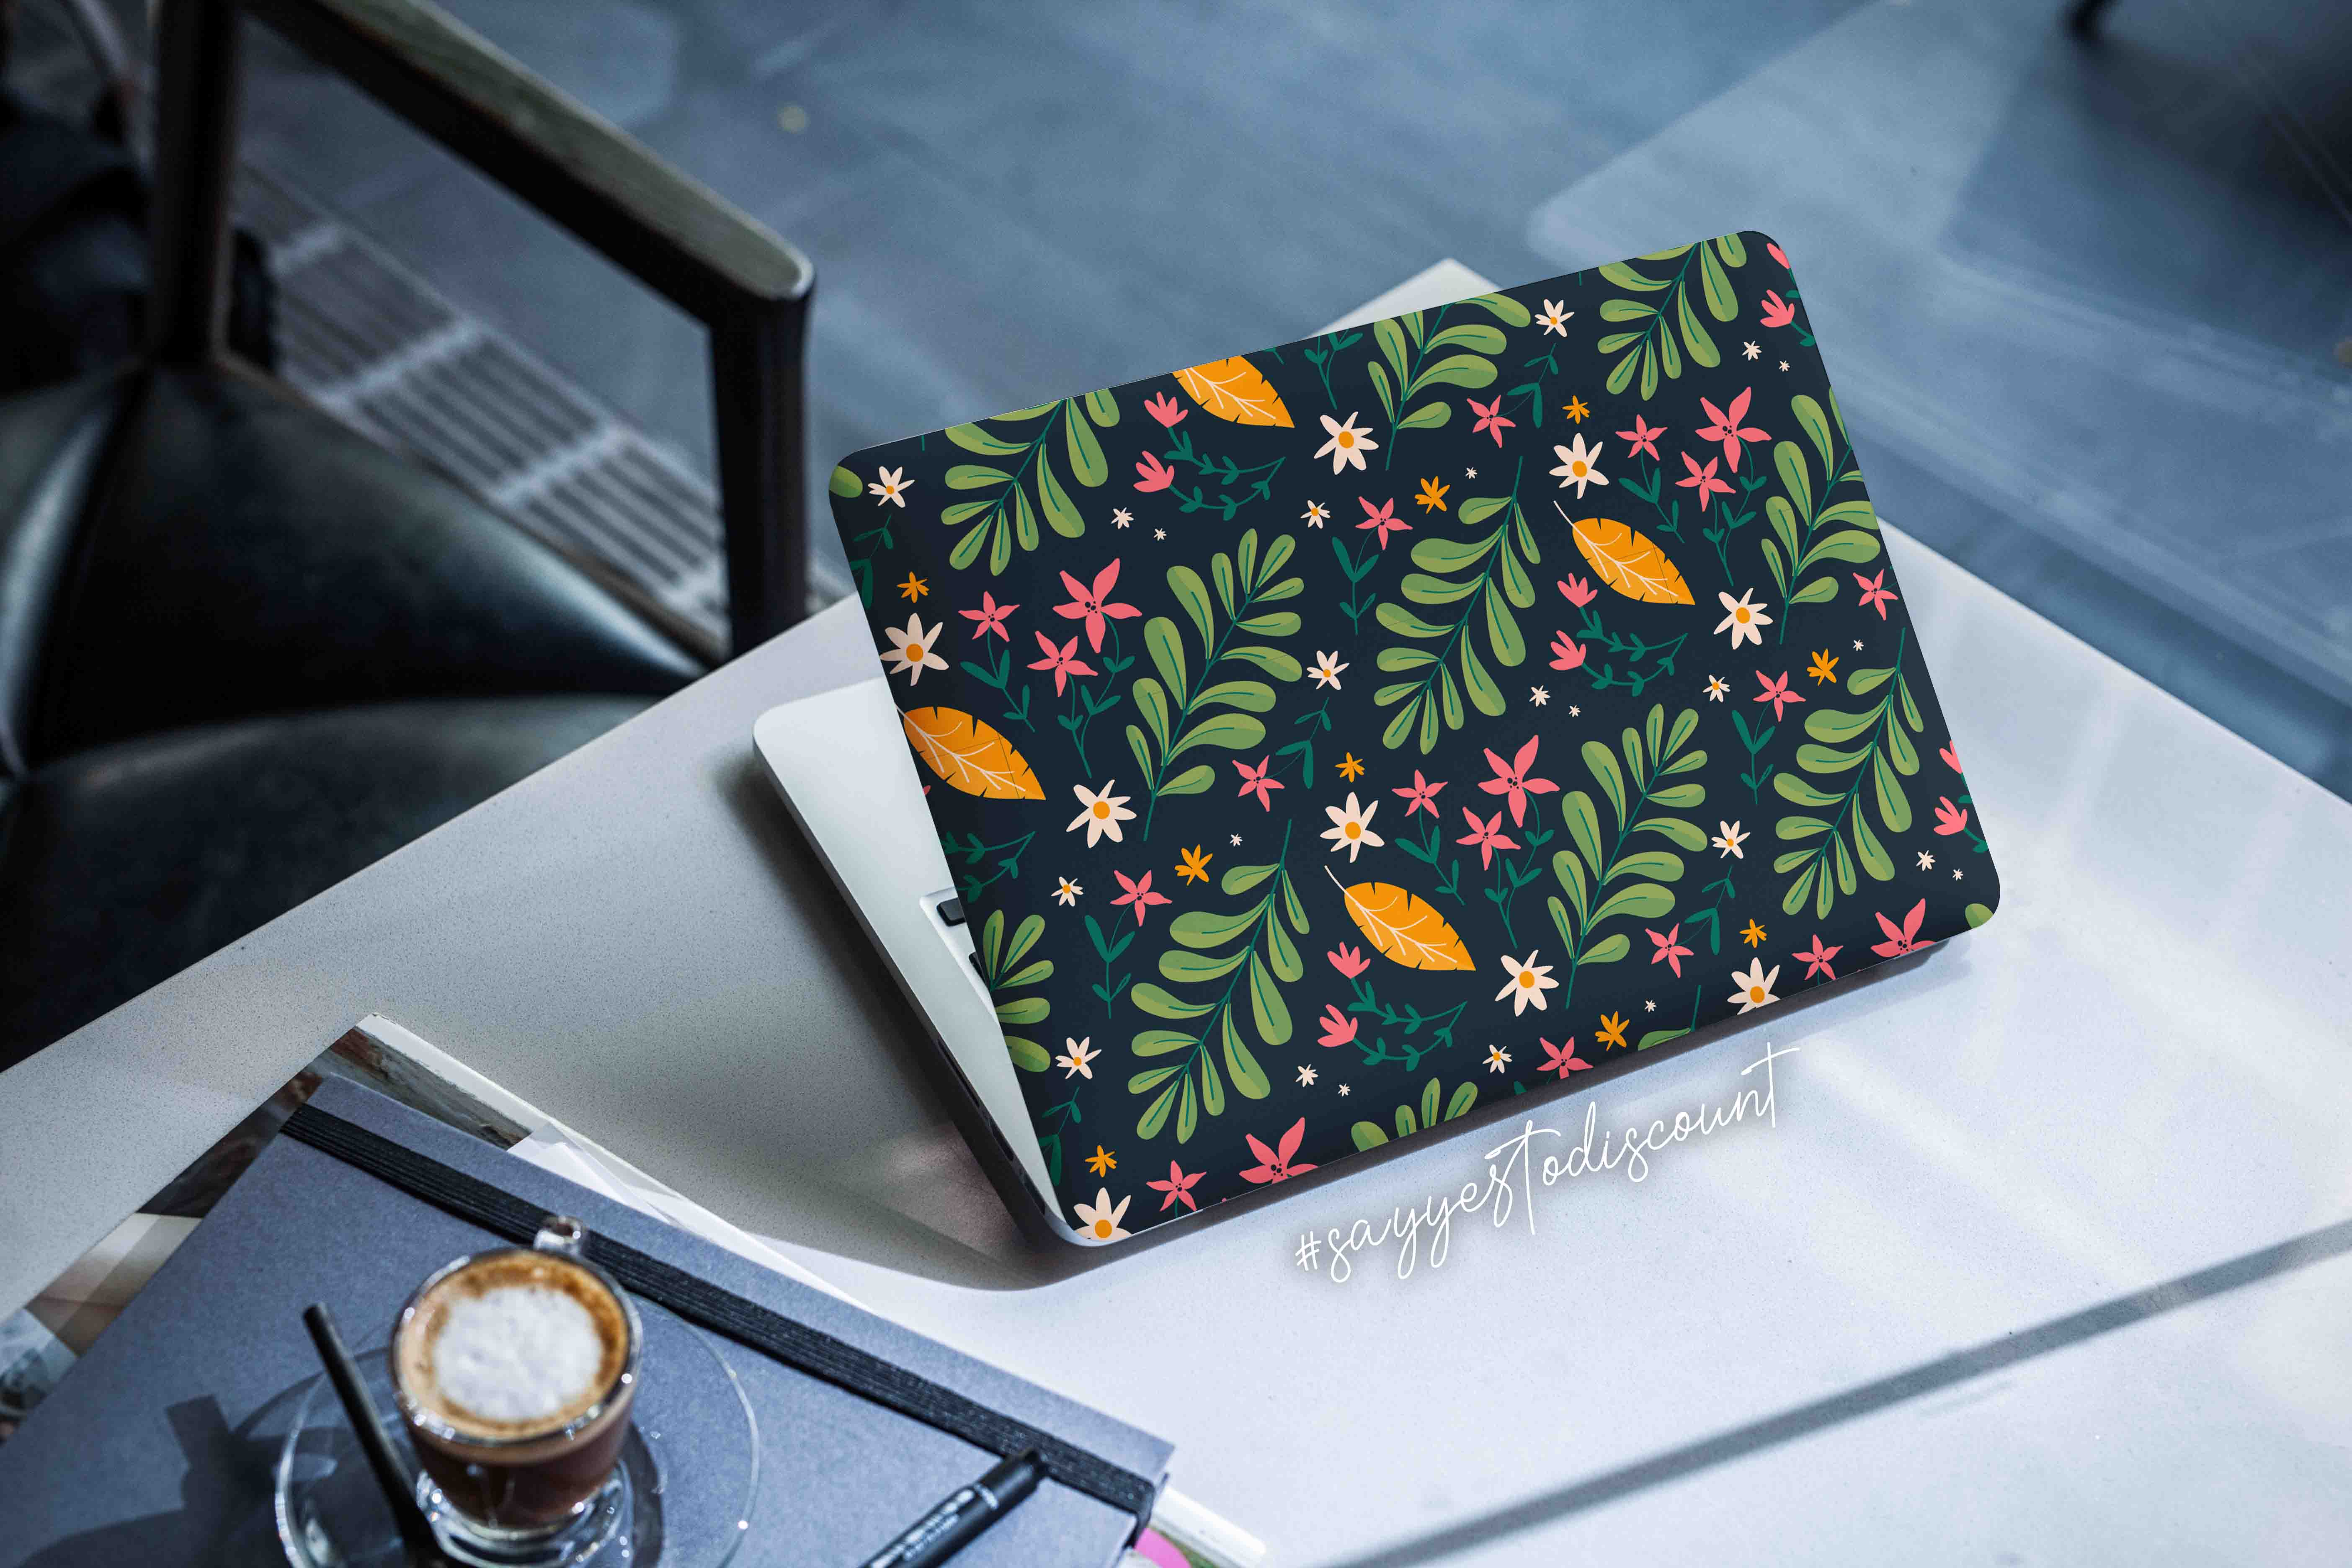 Leaves and Flowers Design Laptop Skin